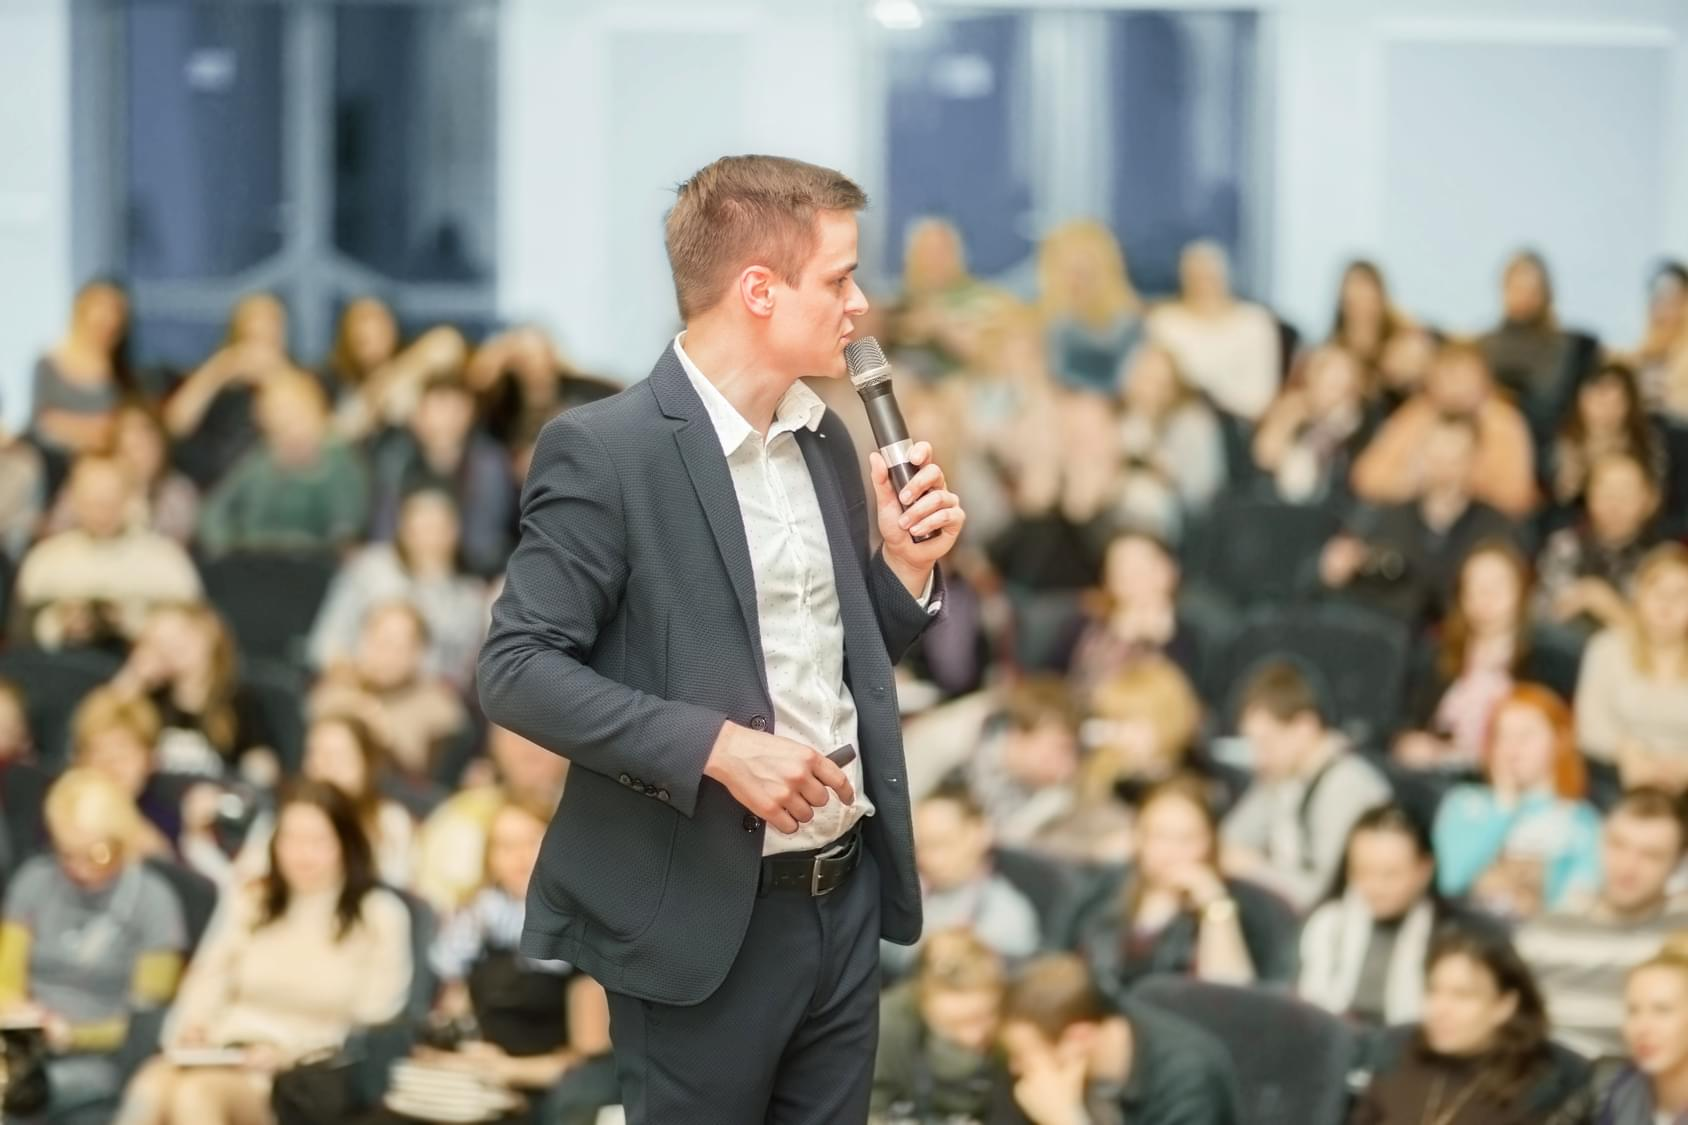 2019 lead generation conferences